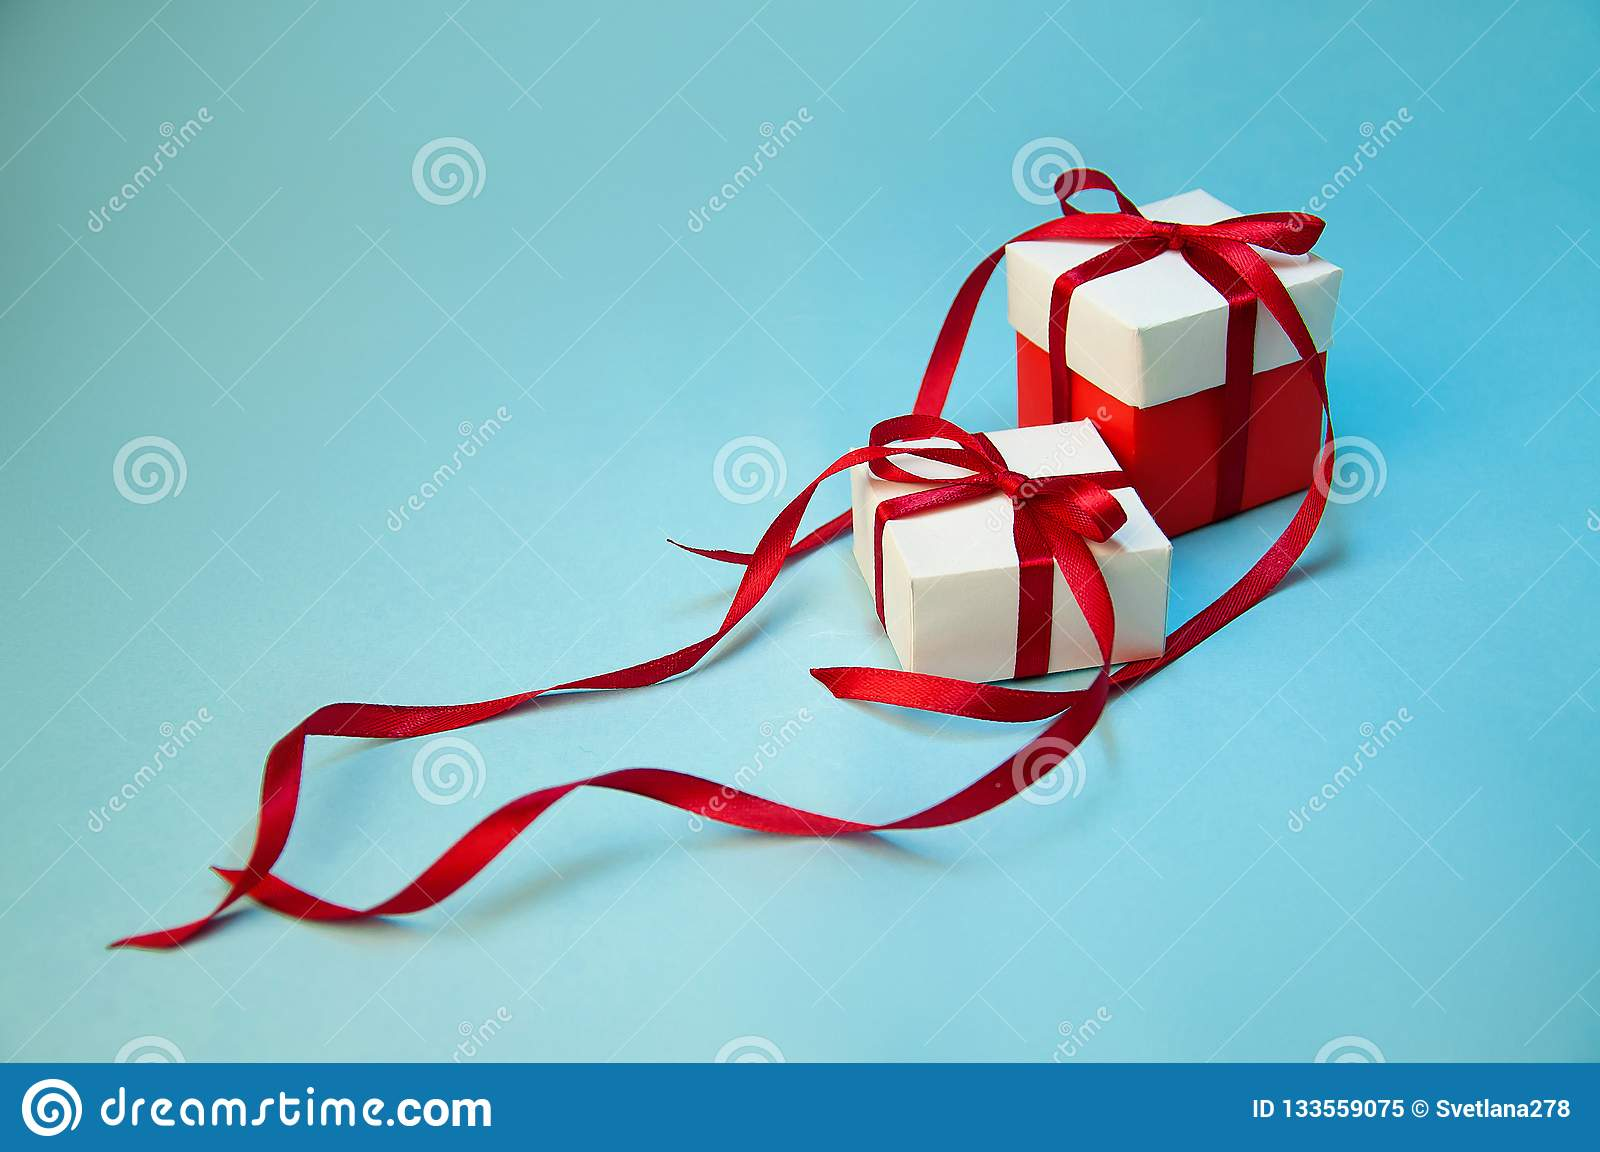 Christmas Gift`s in White Box with Red Ribbon on Light Blue Background. New Year Holiday Composition. Copy Space